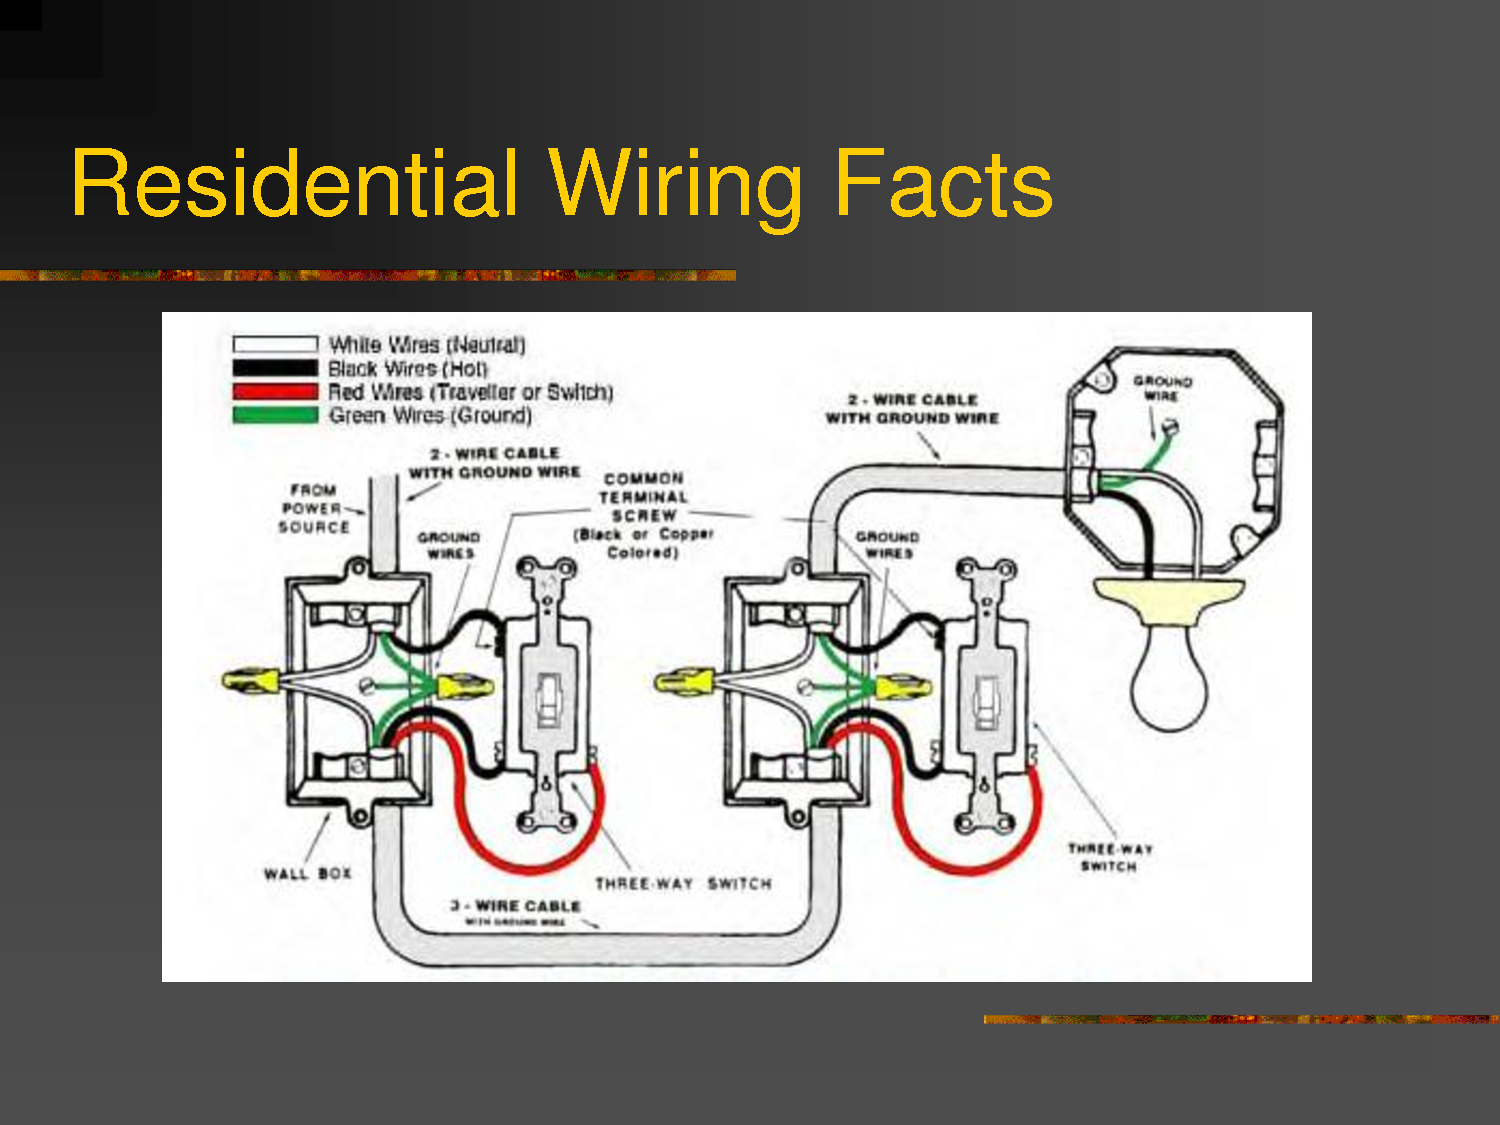 4 Best Images Of Residential Wiring Diagrams - House Electrical - House Electrical Wiring Diagram